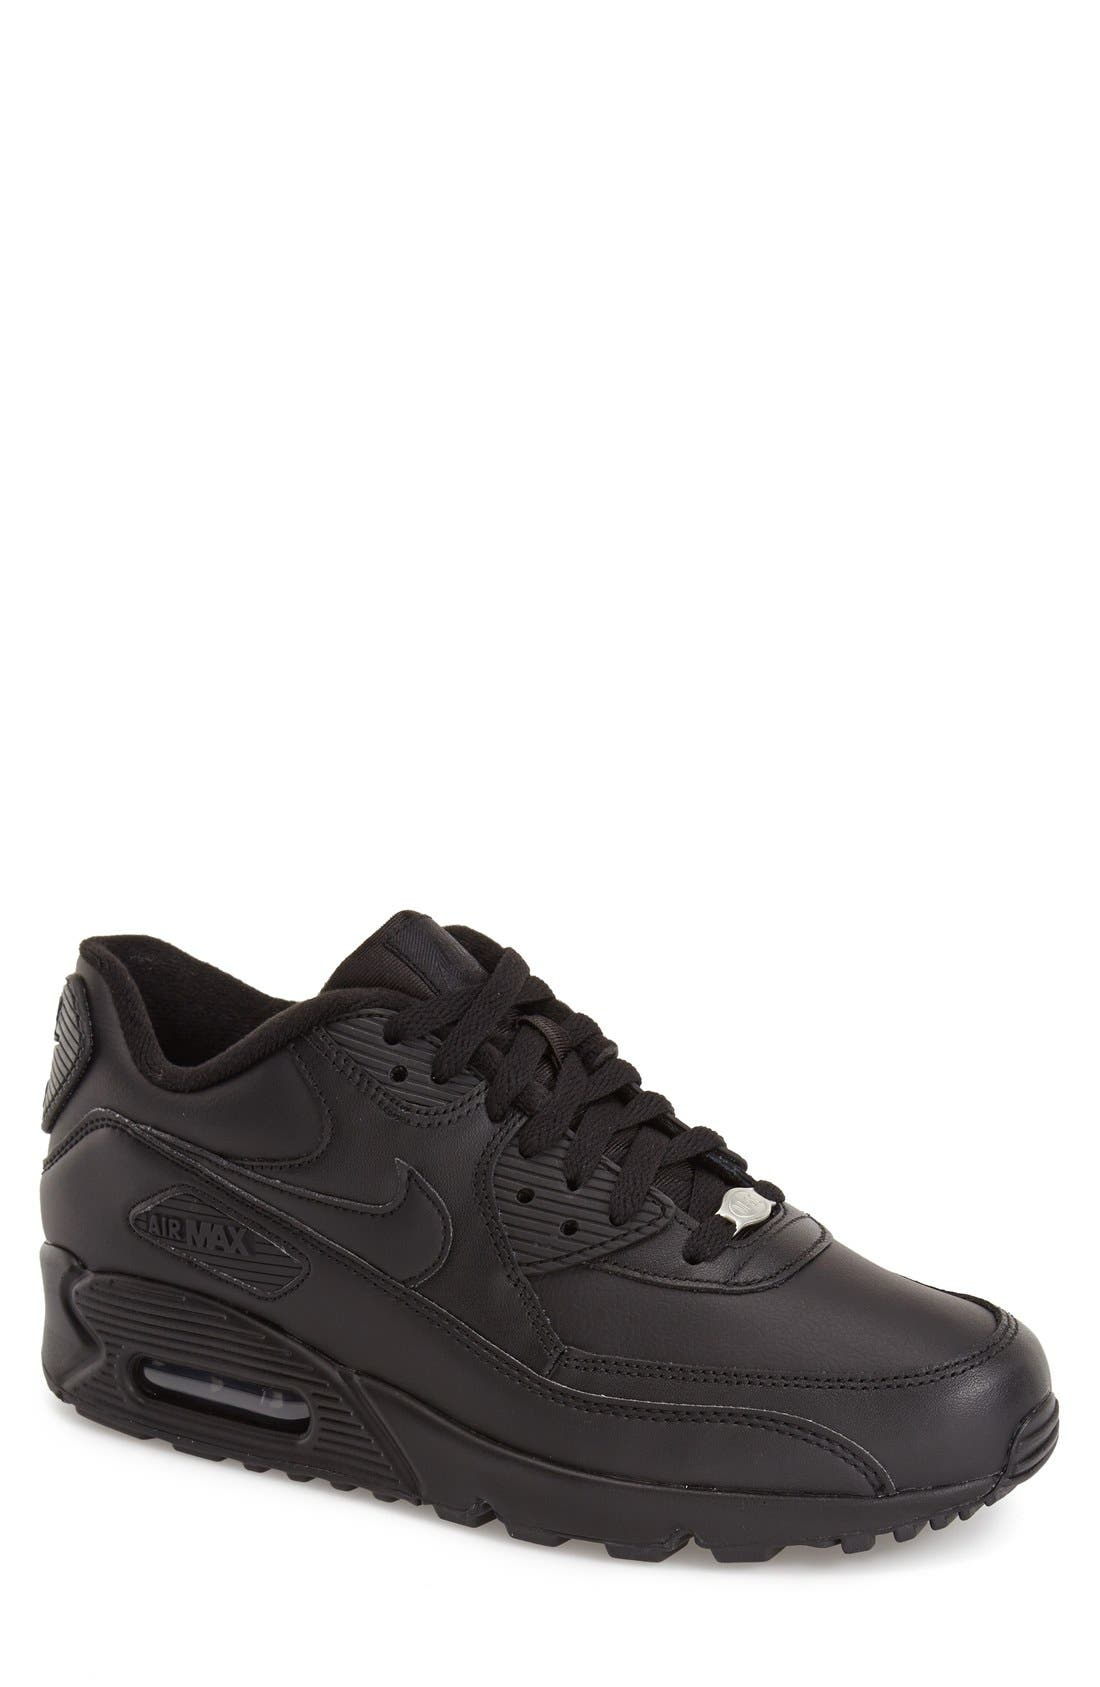 'Air Max 90' Leather Sneaker,                             Main thumbnail 1, color,                             001